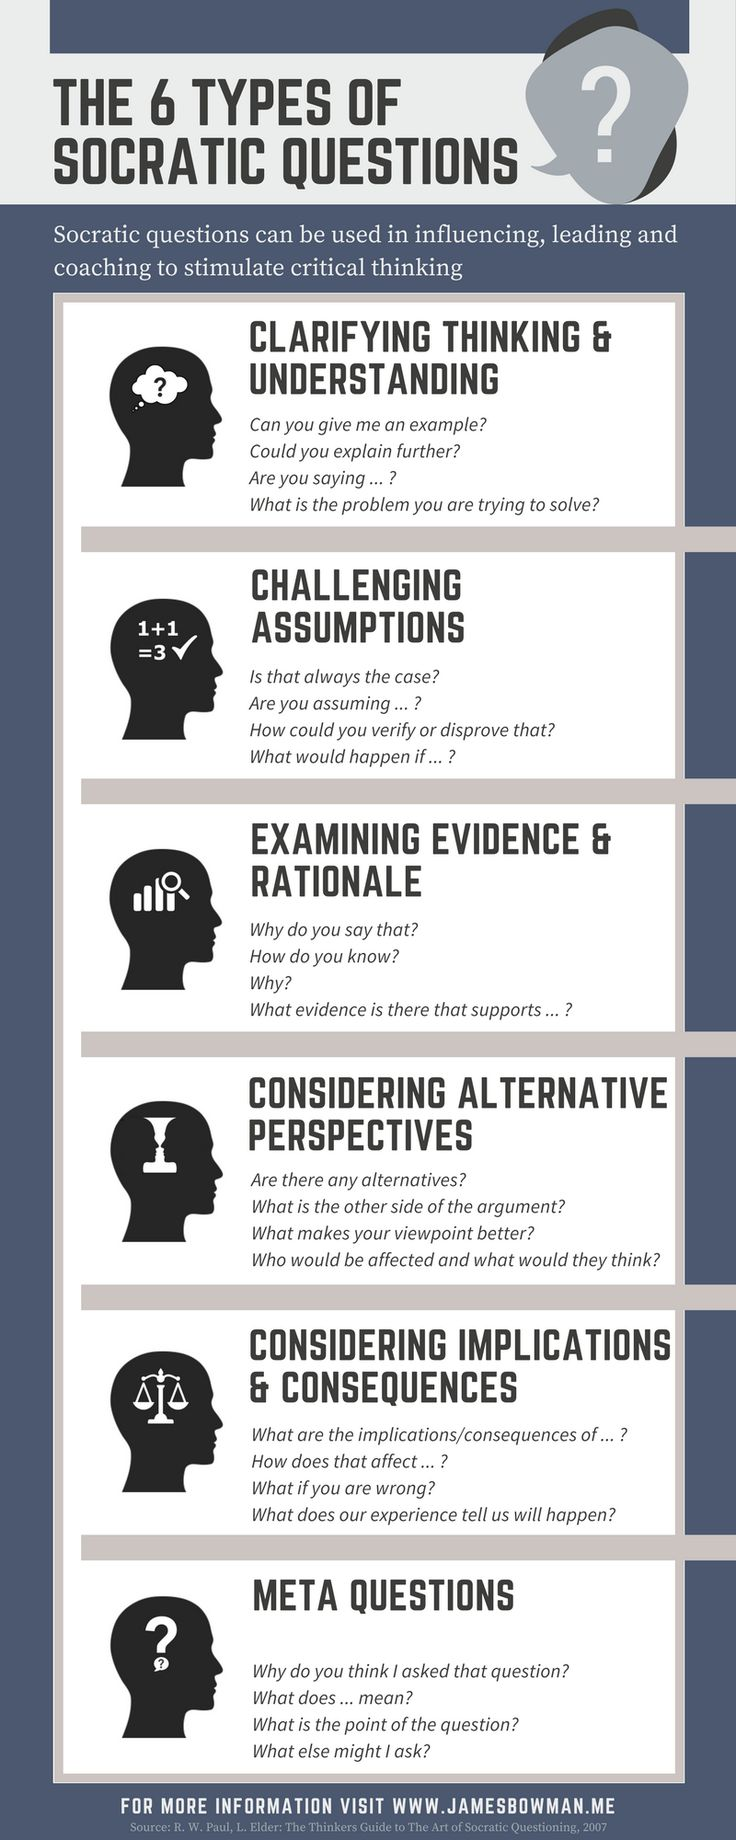 best images about art criticism and response to art on infographic illustrating the 6 types of socratic question to stimulate critical thinking